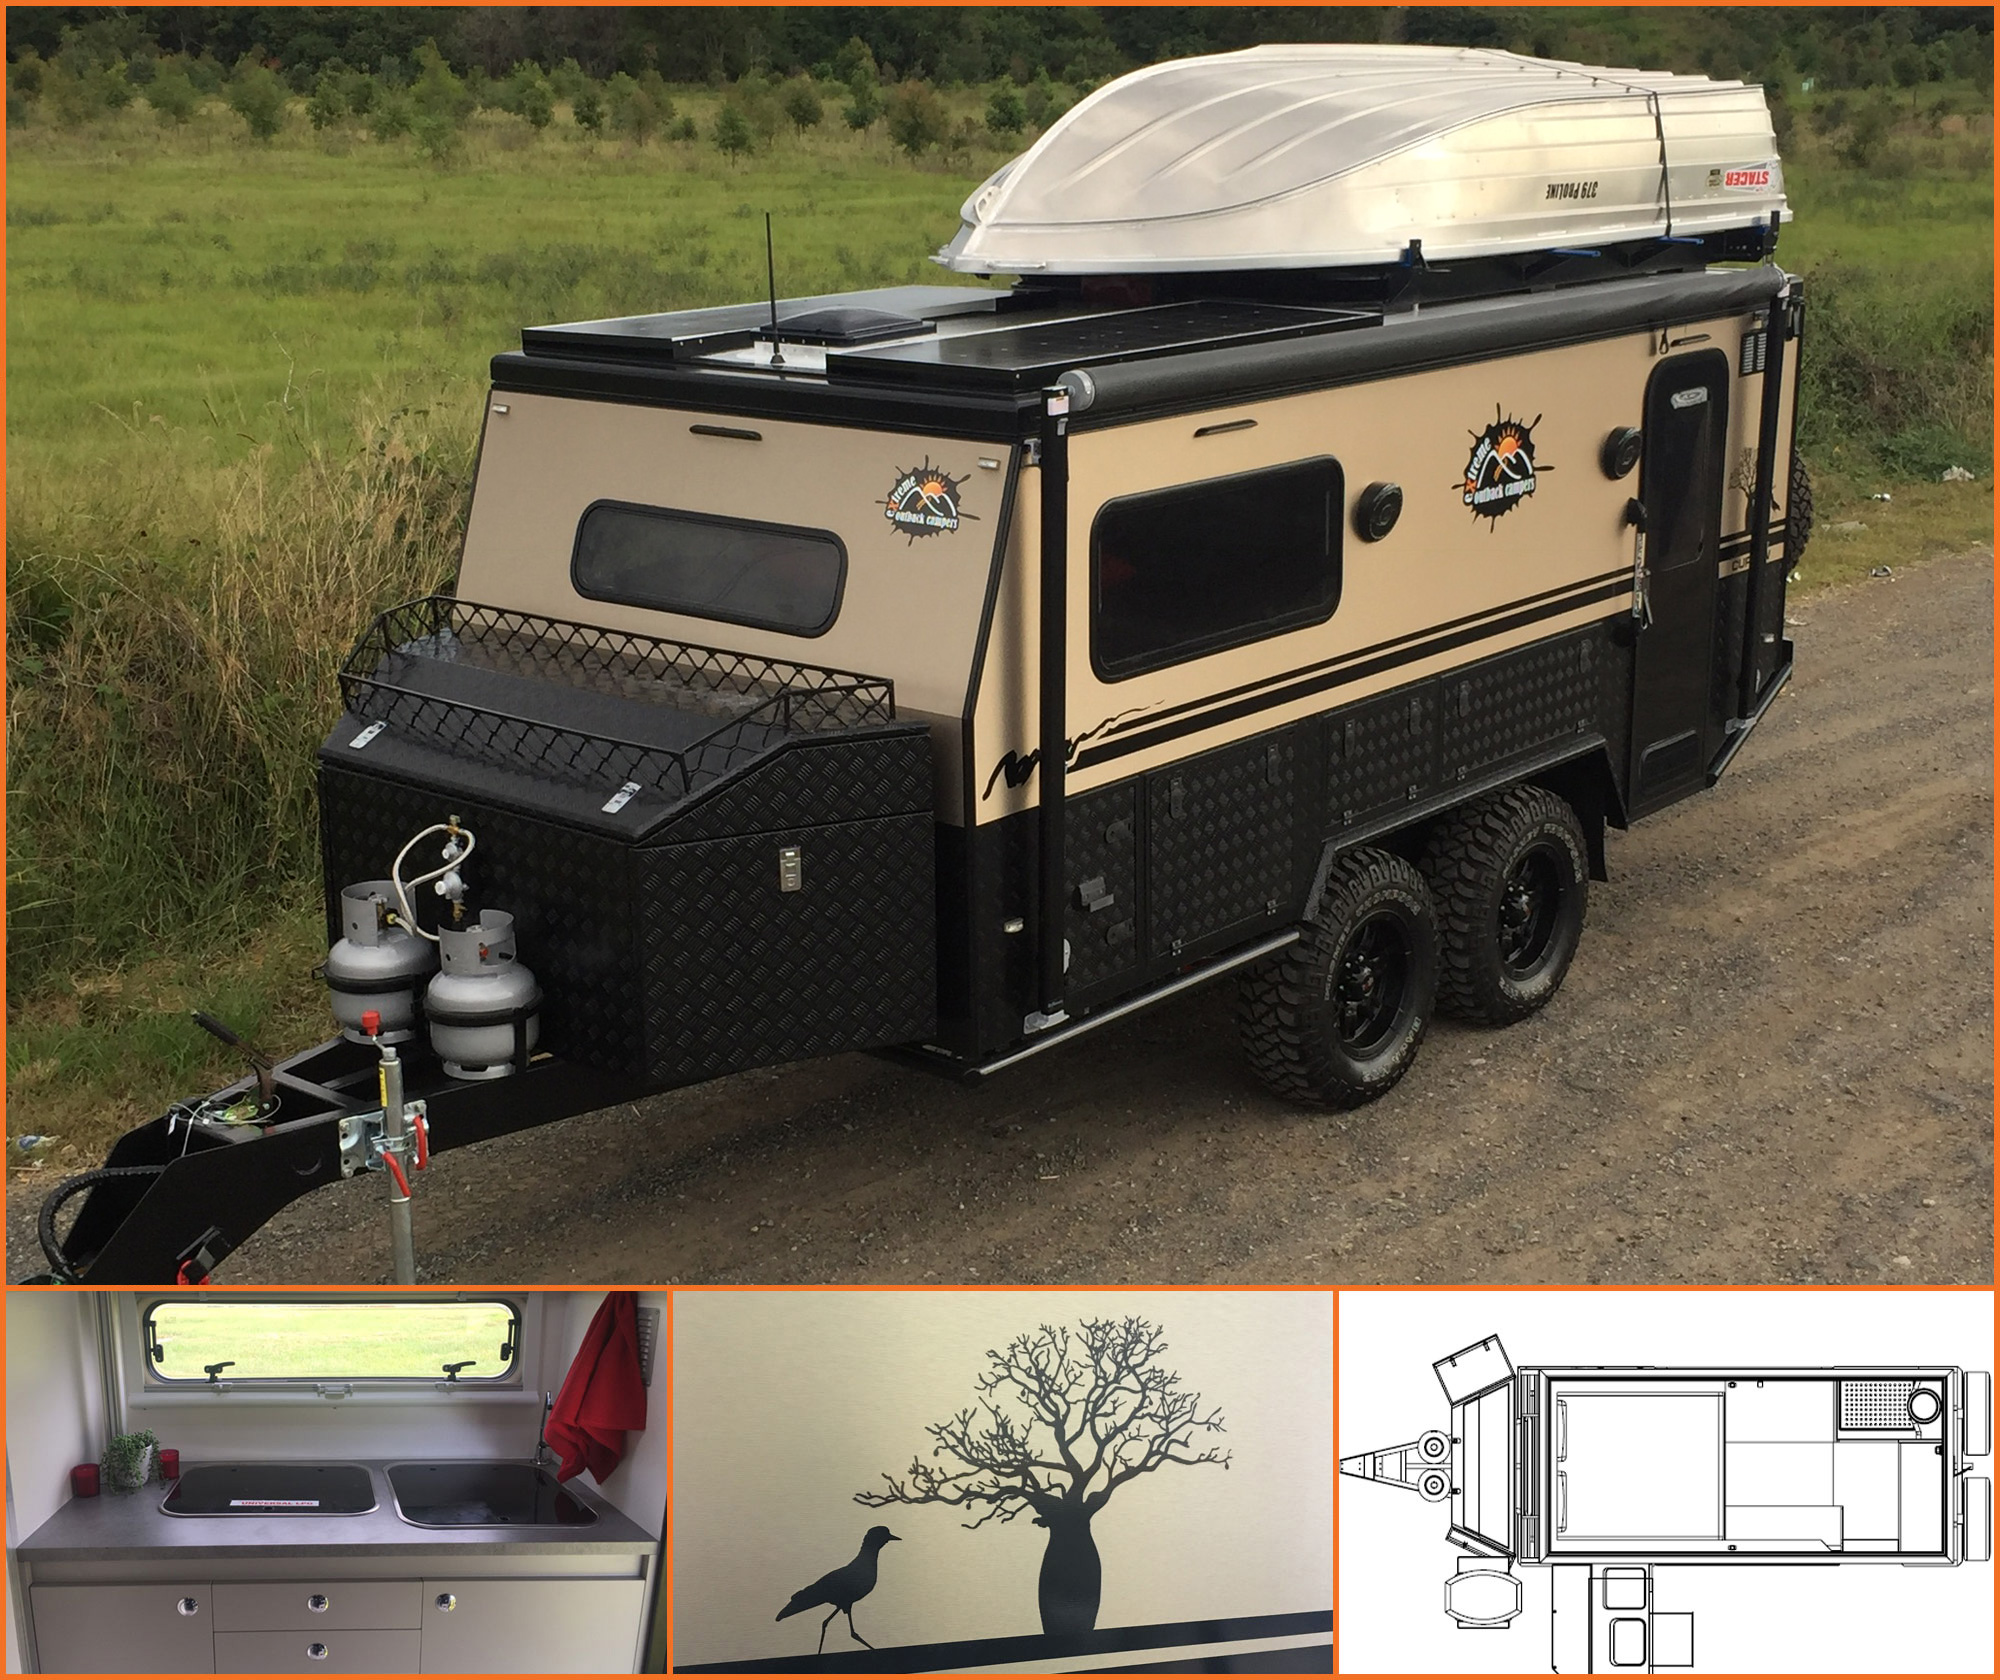 The new outback extreme caravan - the curlew